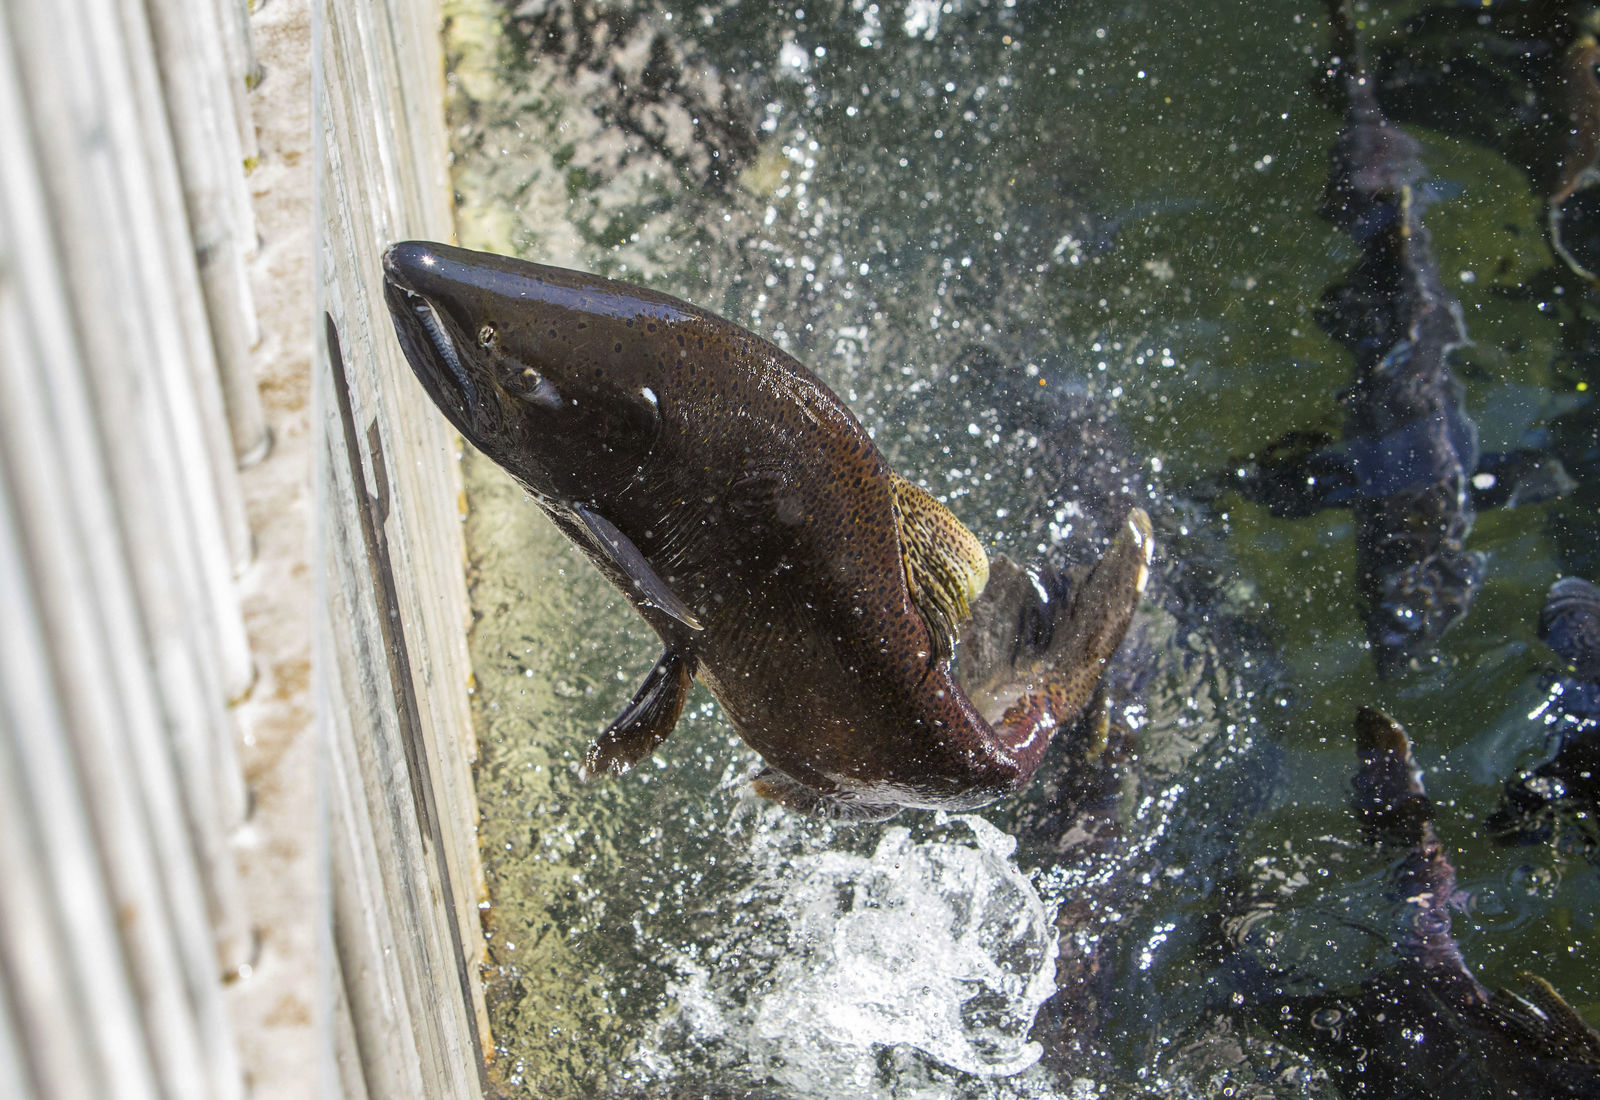 FILE - In this Sept. 23, 2015, file photo, a spring chinook salmon reaches the end of the run at the McKenzie Hatchery, where mature fish are gathering in an annual fall ritual east of Springfield, Ore. (Brian Davies/The Register-Guard via AP, File)